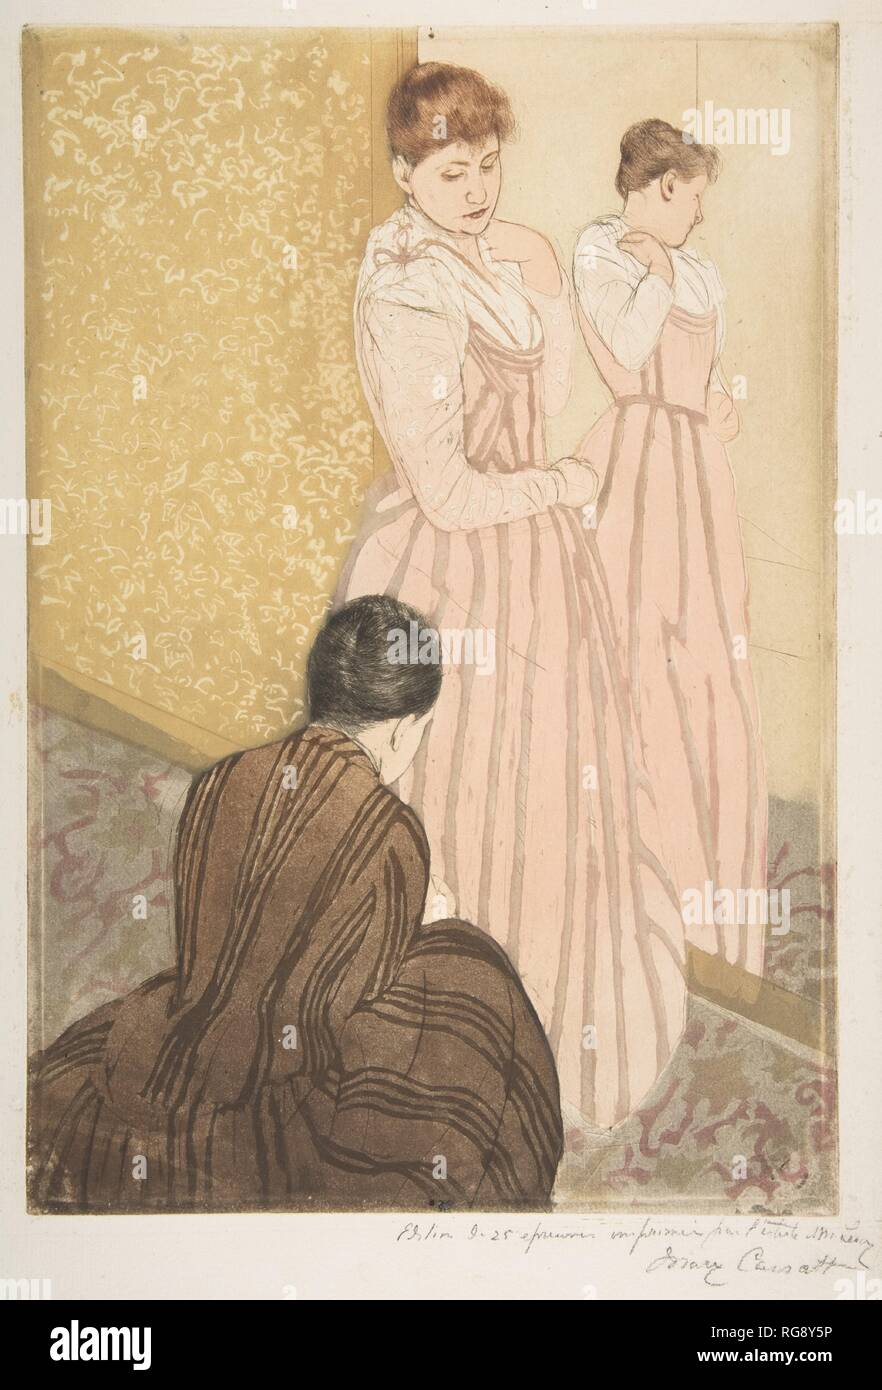 The Fitting. Artist: Mary Cassatt (American, Pittsburgh, Pennsylvania 1844-1926 Le Mesnil-Théribus, Oise). Dimensions: plate: 14 13/16 x 10 1/8 in. (37.6 x 25.7 cm)  sheet: 16 13/16 x 11 3/4 in. (42.7 x 29.8 cm). Date: 1890-91. Museum: Metropolitan Museum of Art, New York, USA. Stock Photo